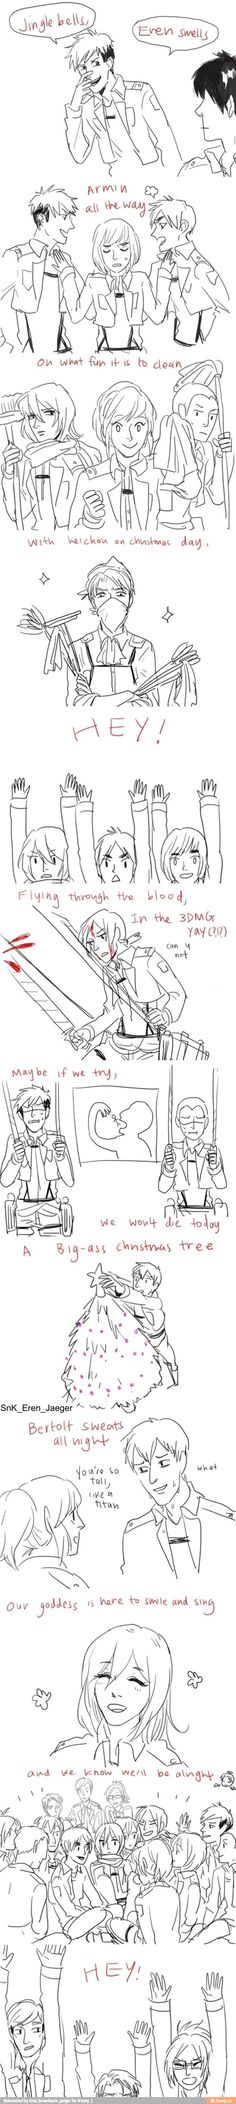 Lol Jingle Bells spinoff<<< Levi in the last panel tho-- XD